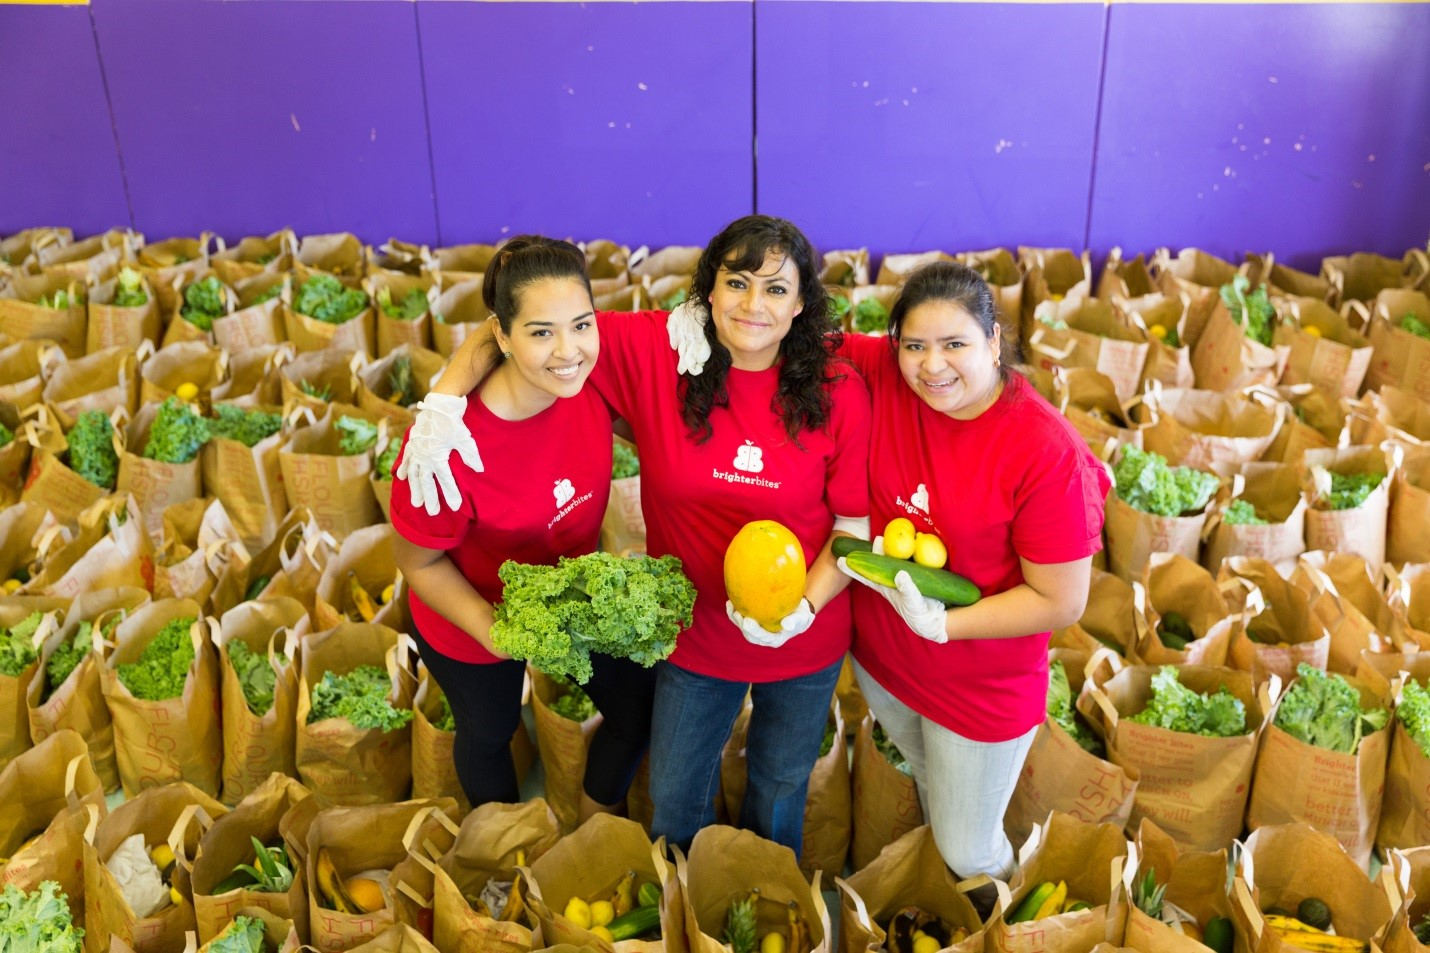 three women stand among a bunch of produce filled bags